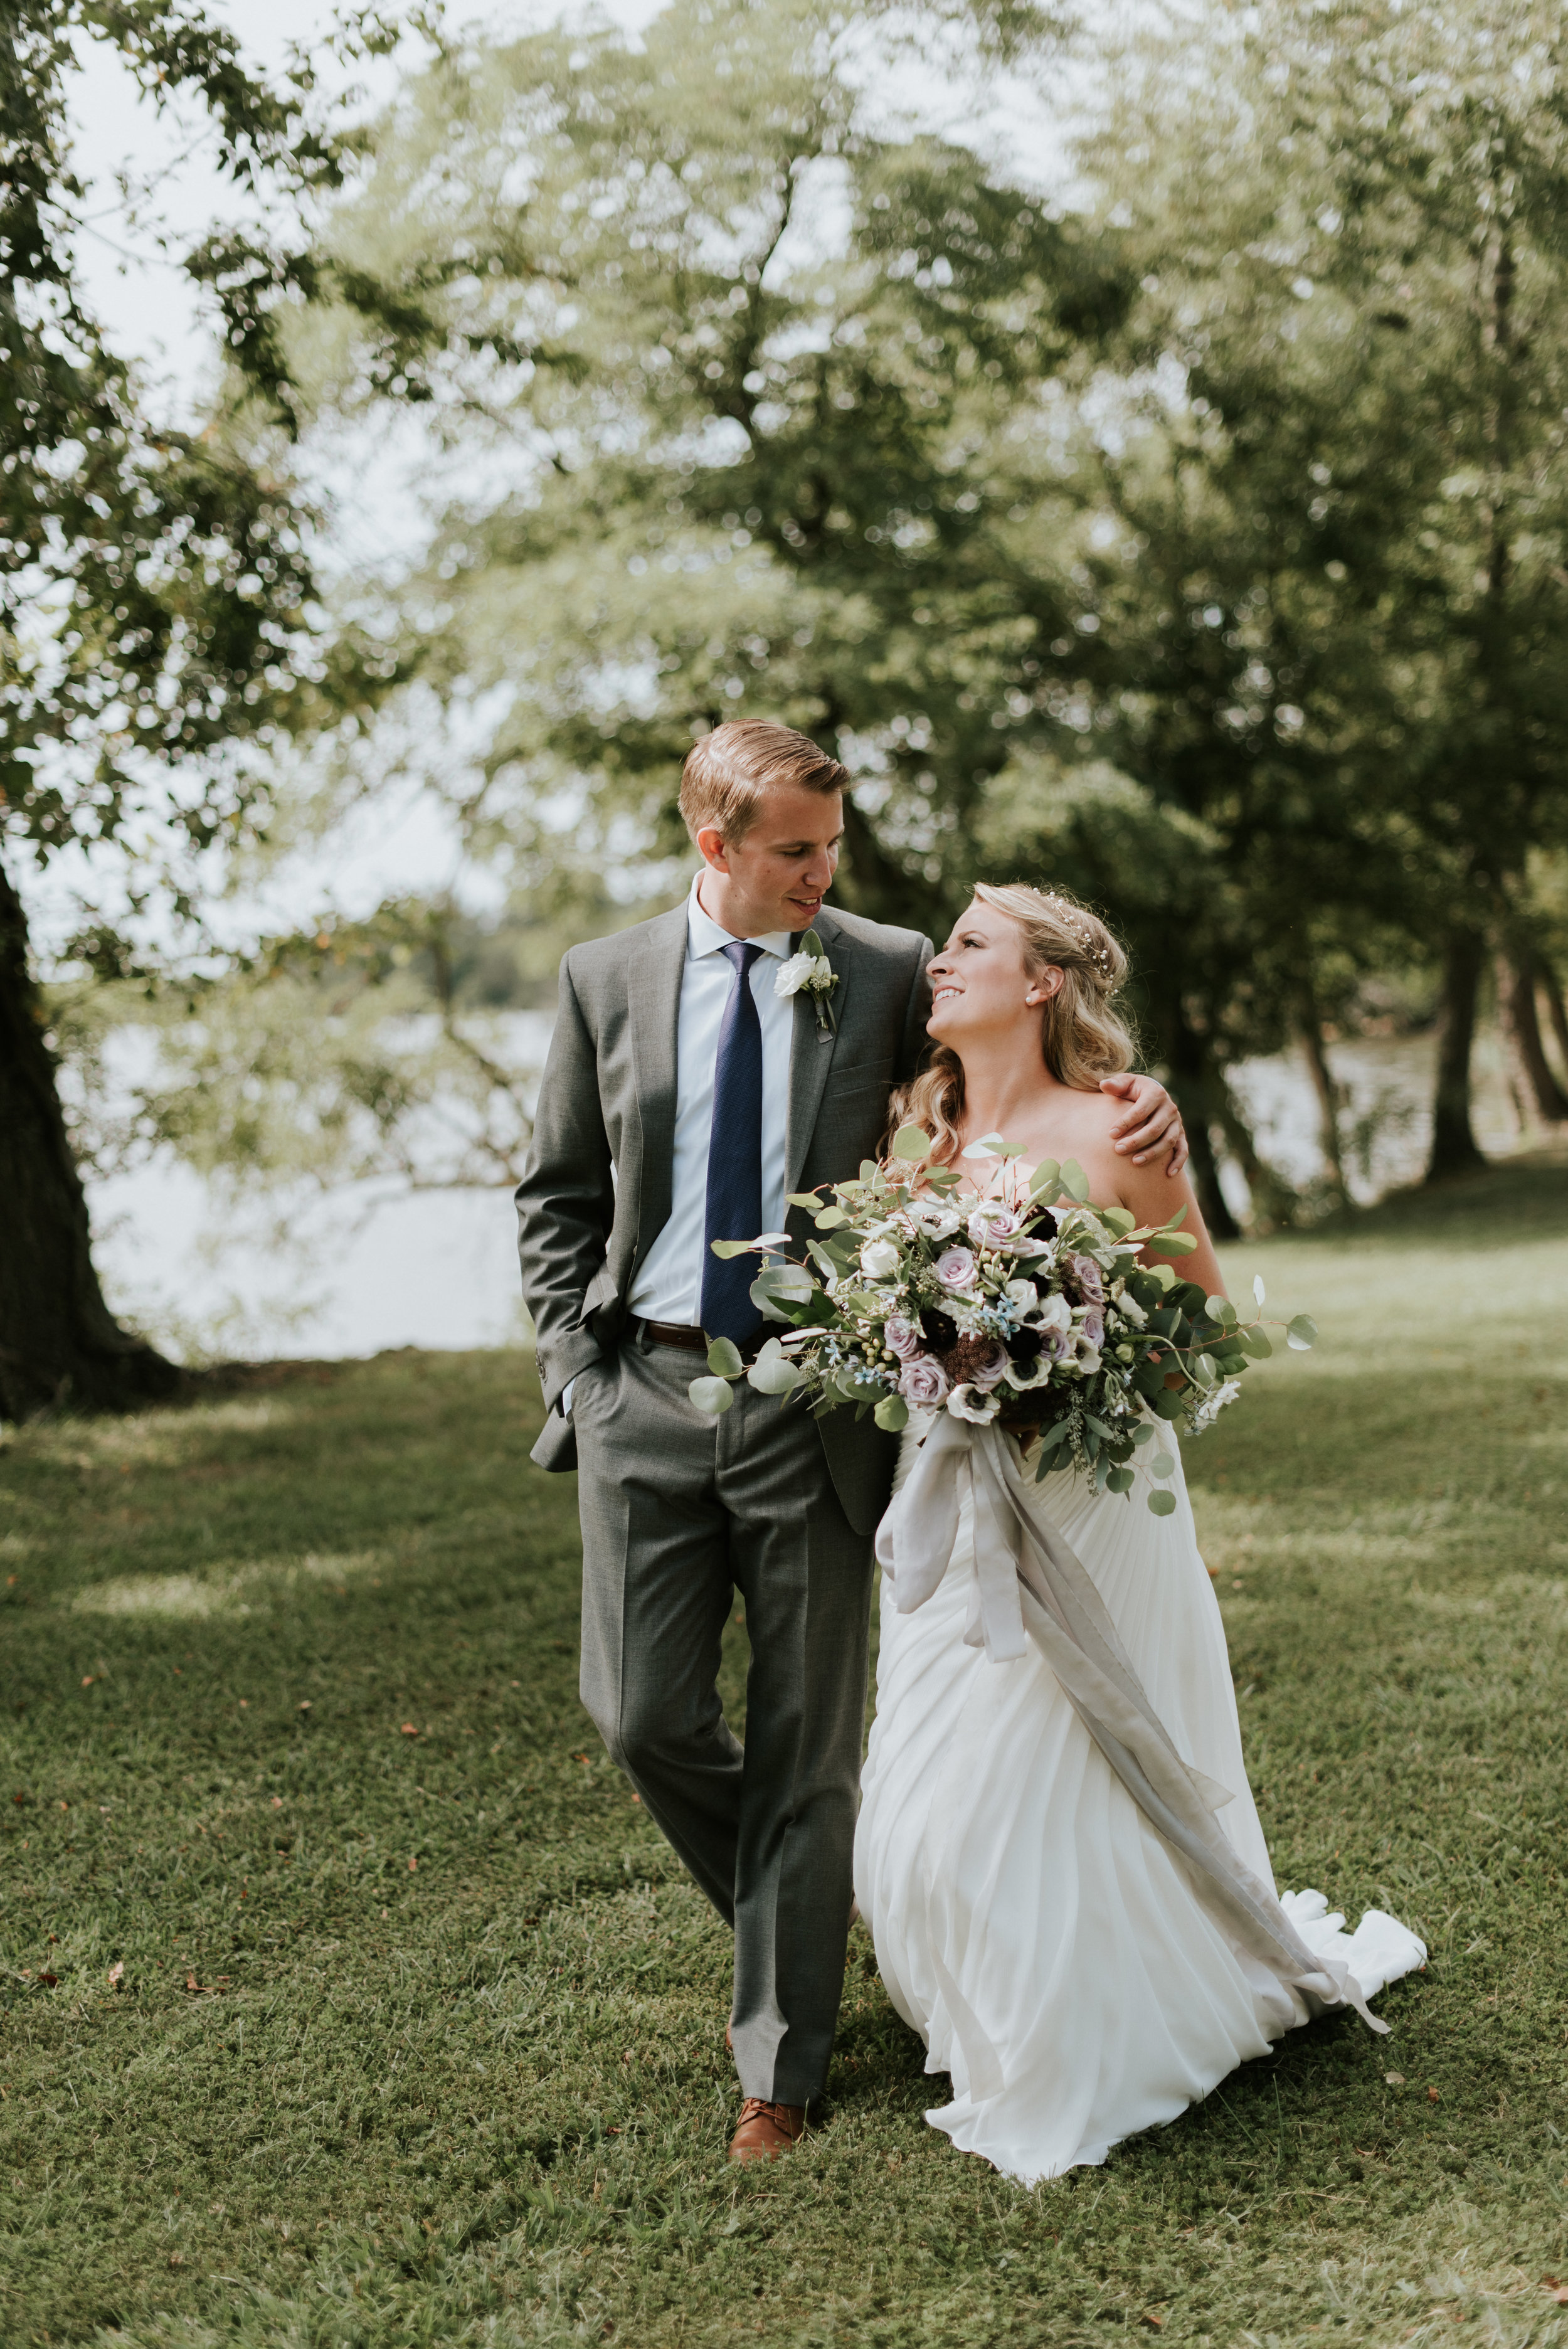 Rustic Oyster Themed Eastern Shore Maryland Outdoor Wedding by East Made Event Company Wedding Planner and Bekah Kay Creative217.jpg